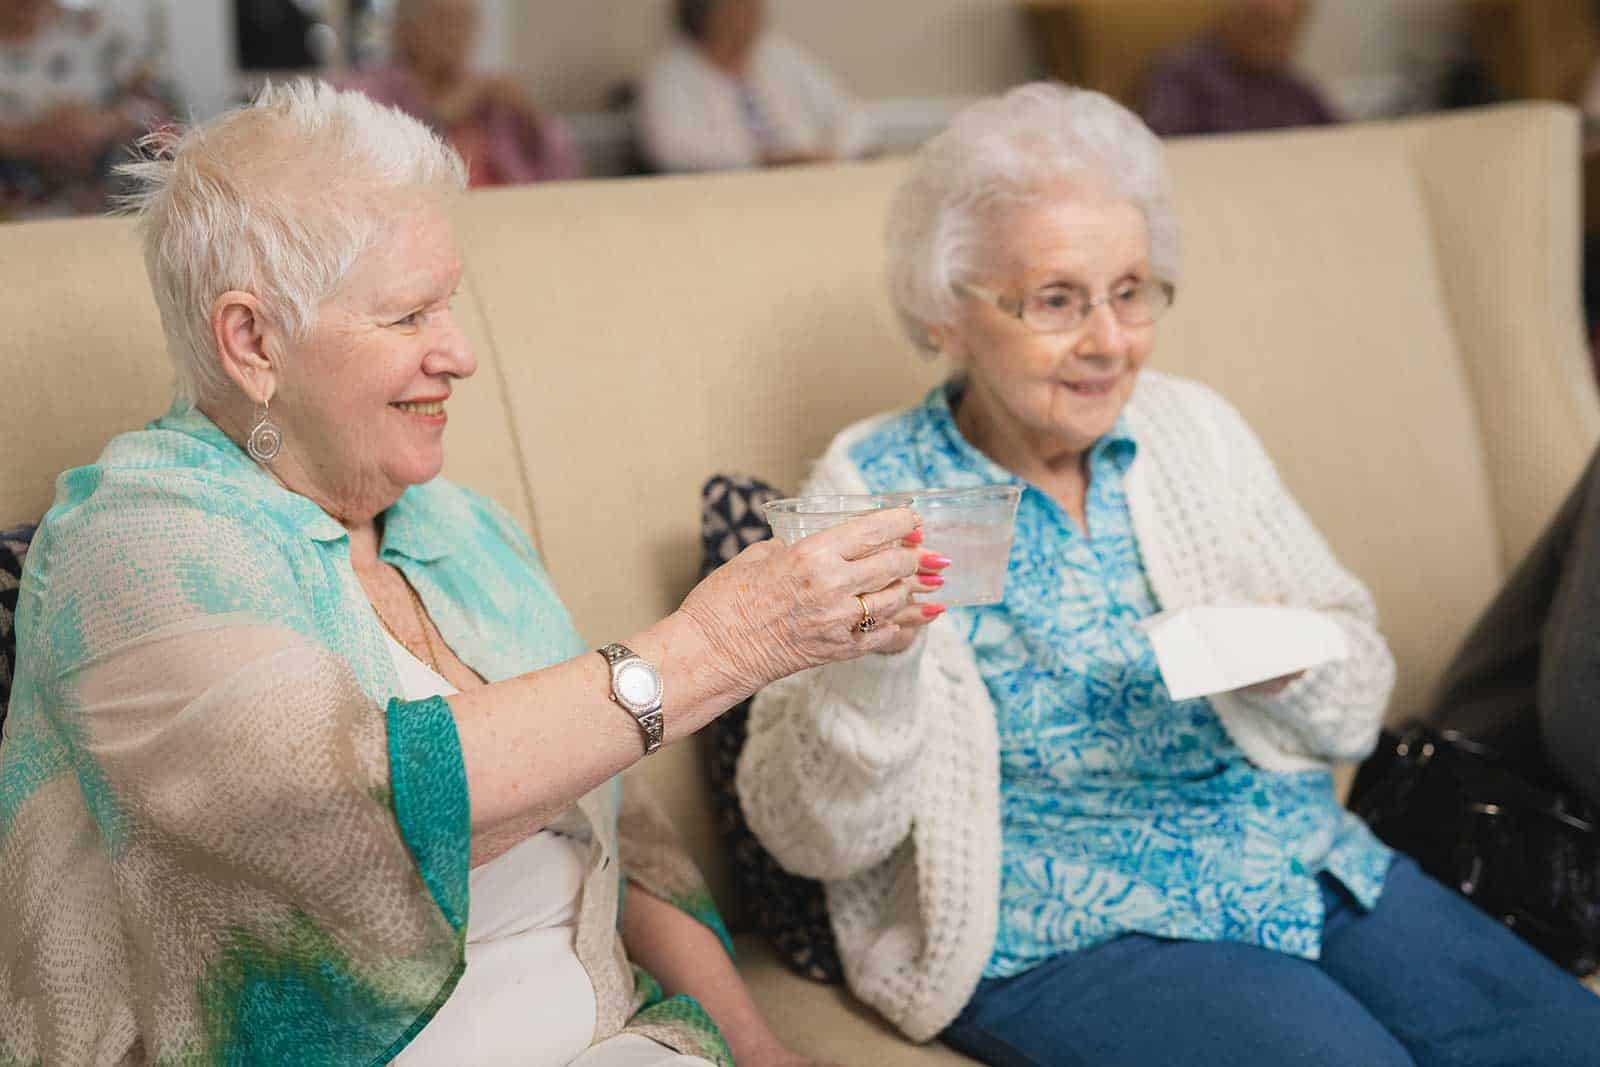 Two senior women tapping cups during happy hour in assisted living community